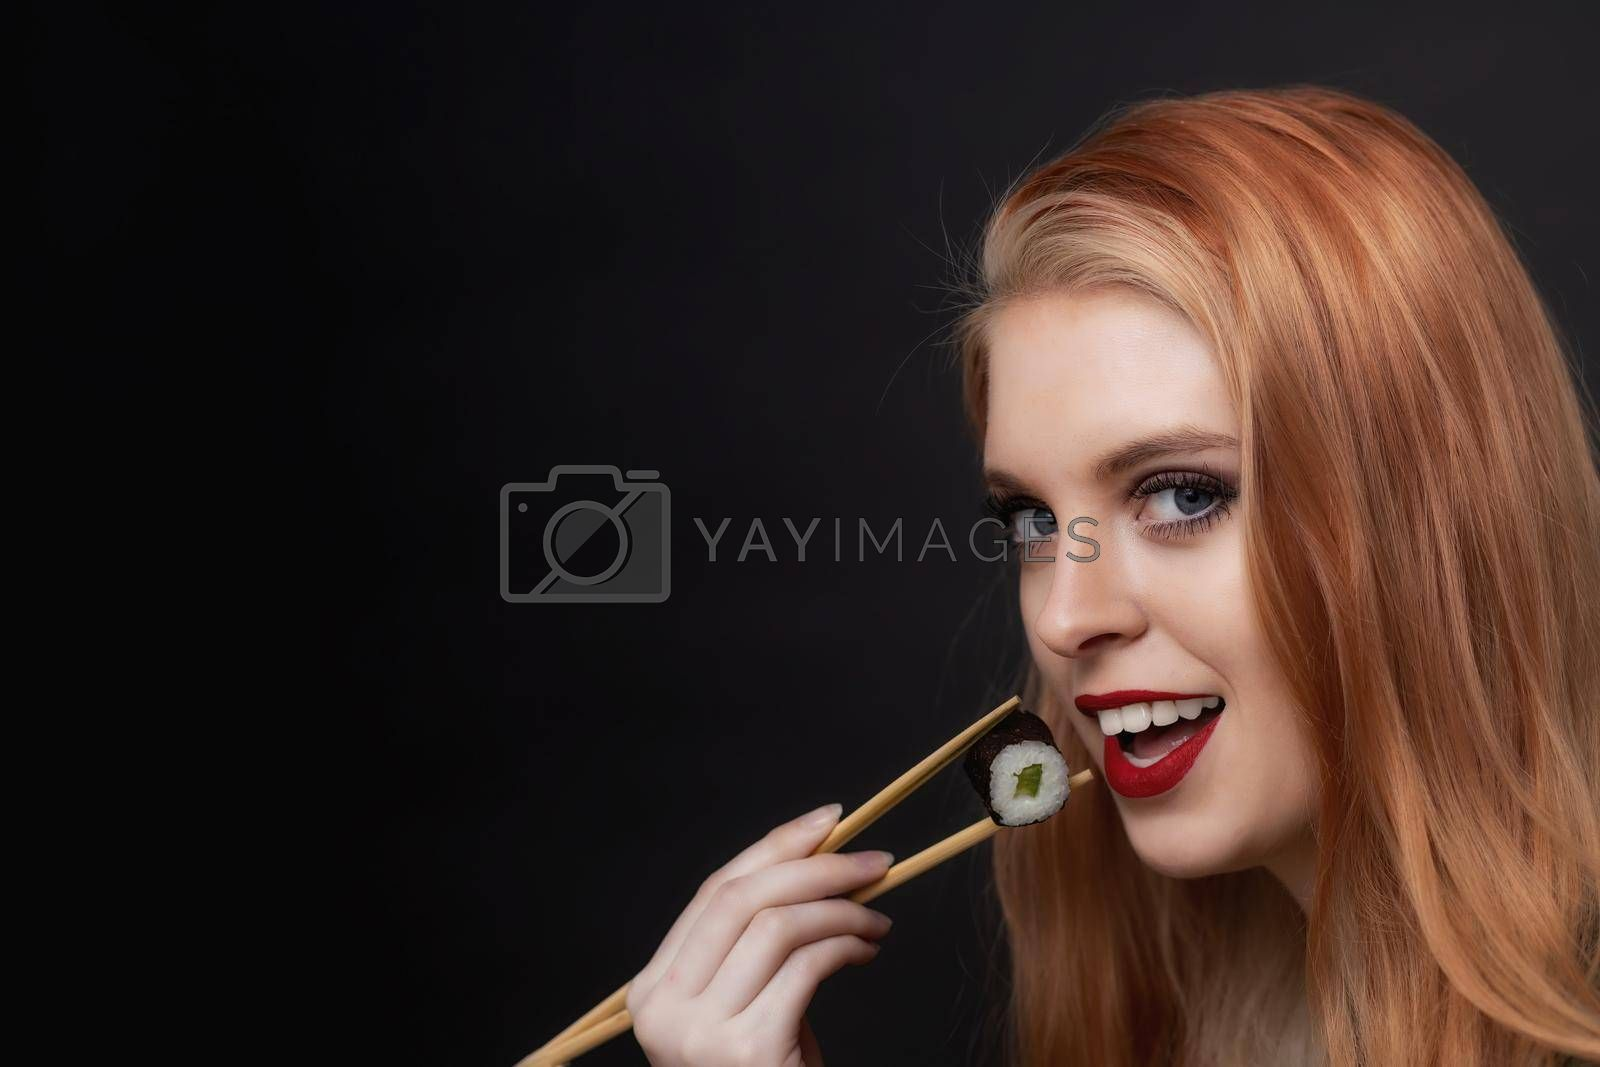 Royalty free image of Side view portrait of young woman tasting sushi closeup. by Frank11